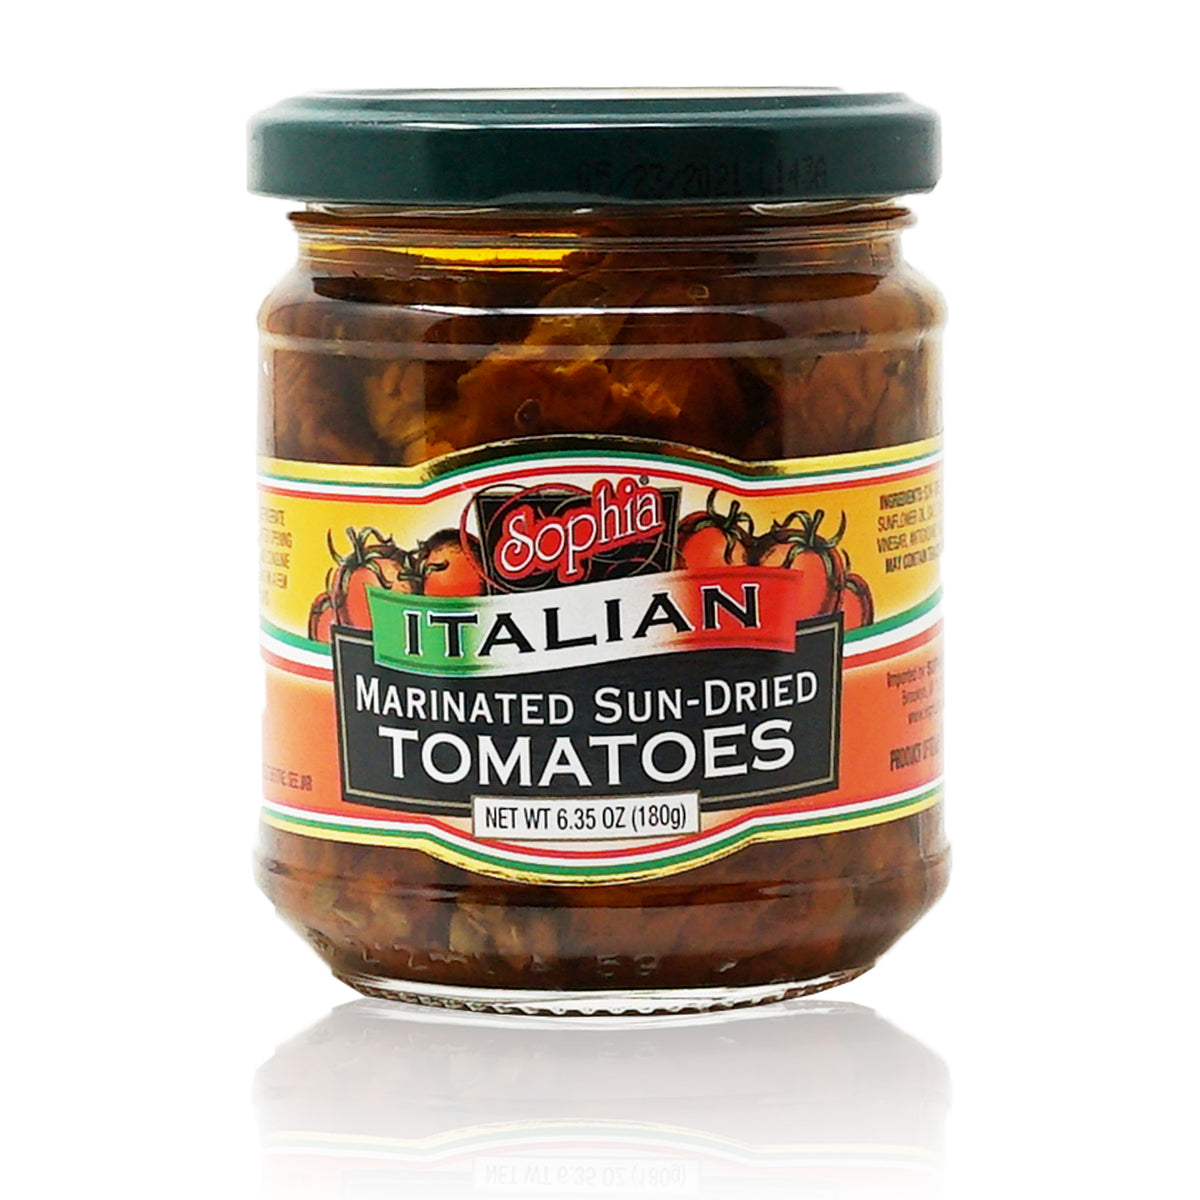 Sophia Italian Marinated Sundried Tomatoes